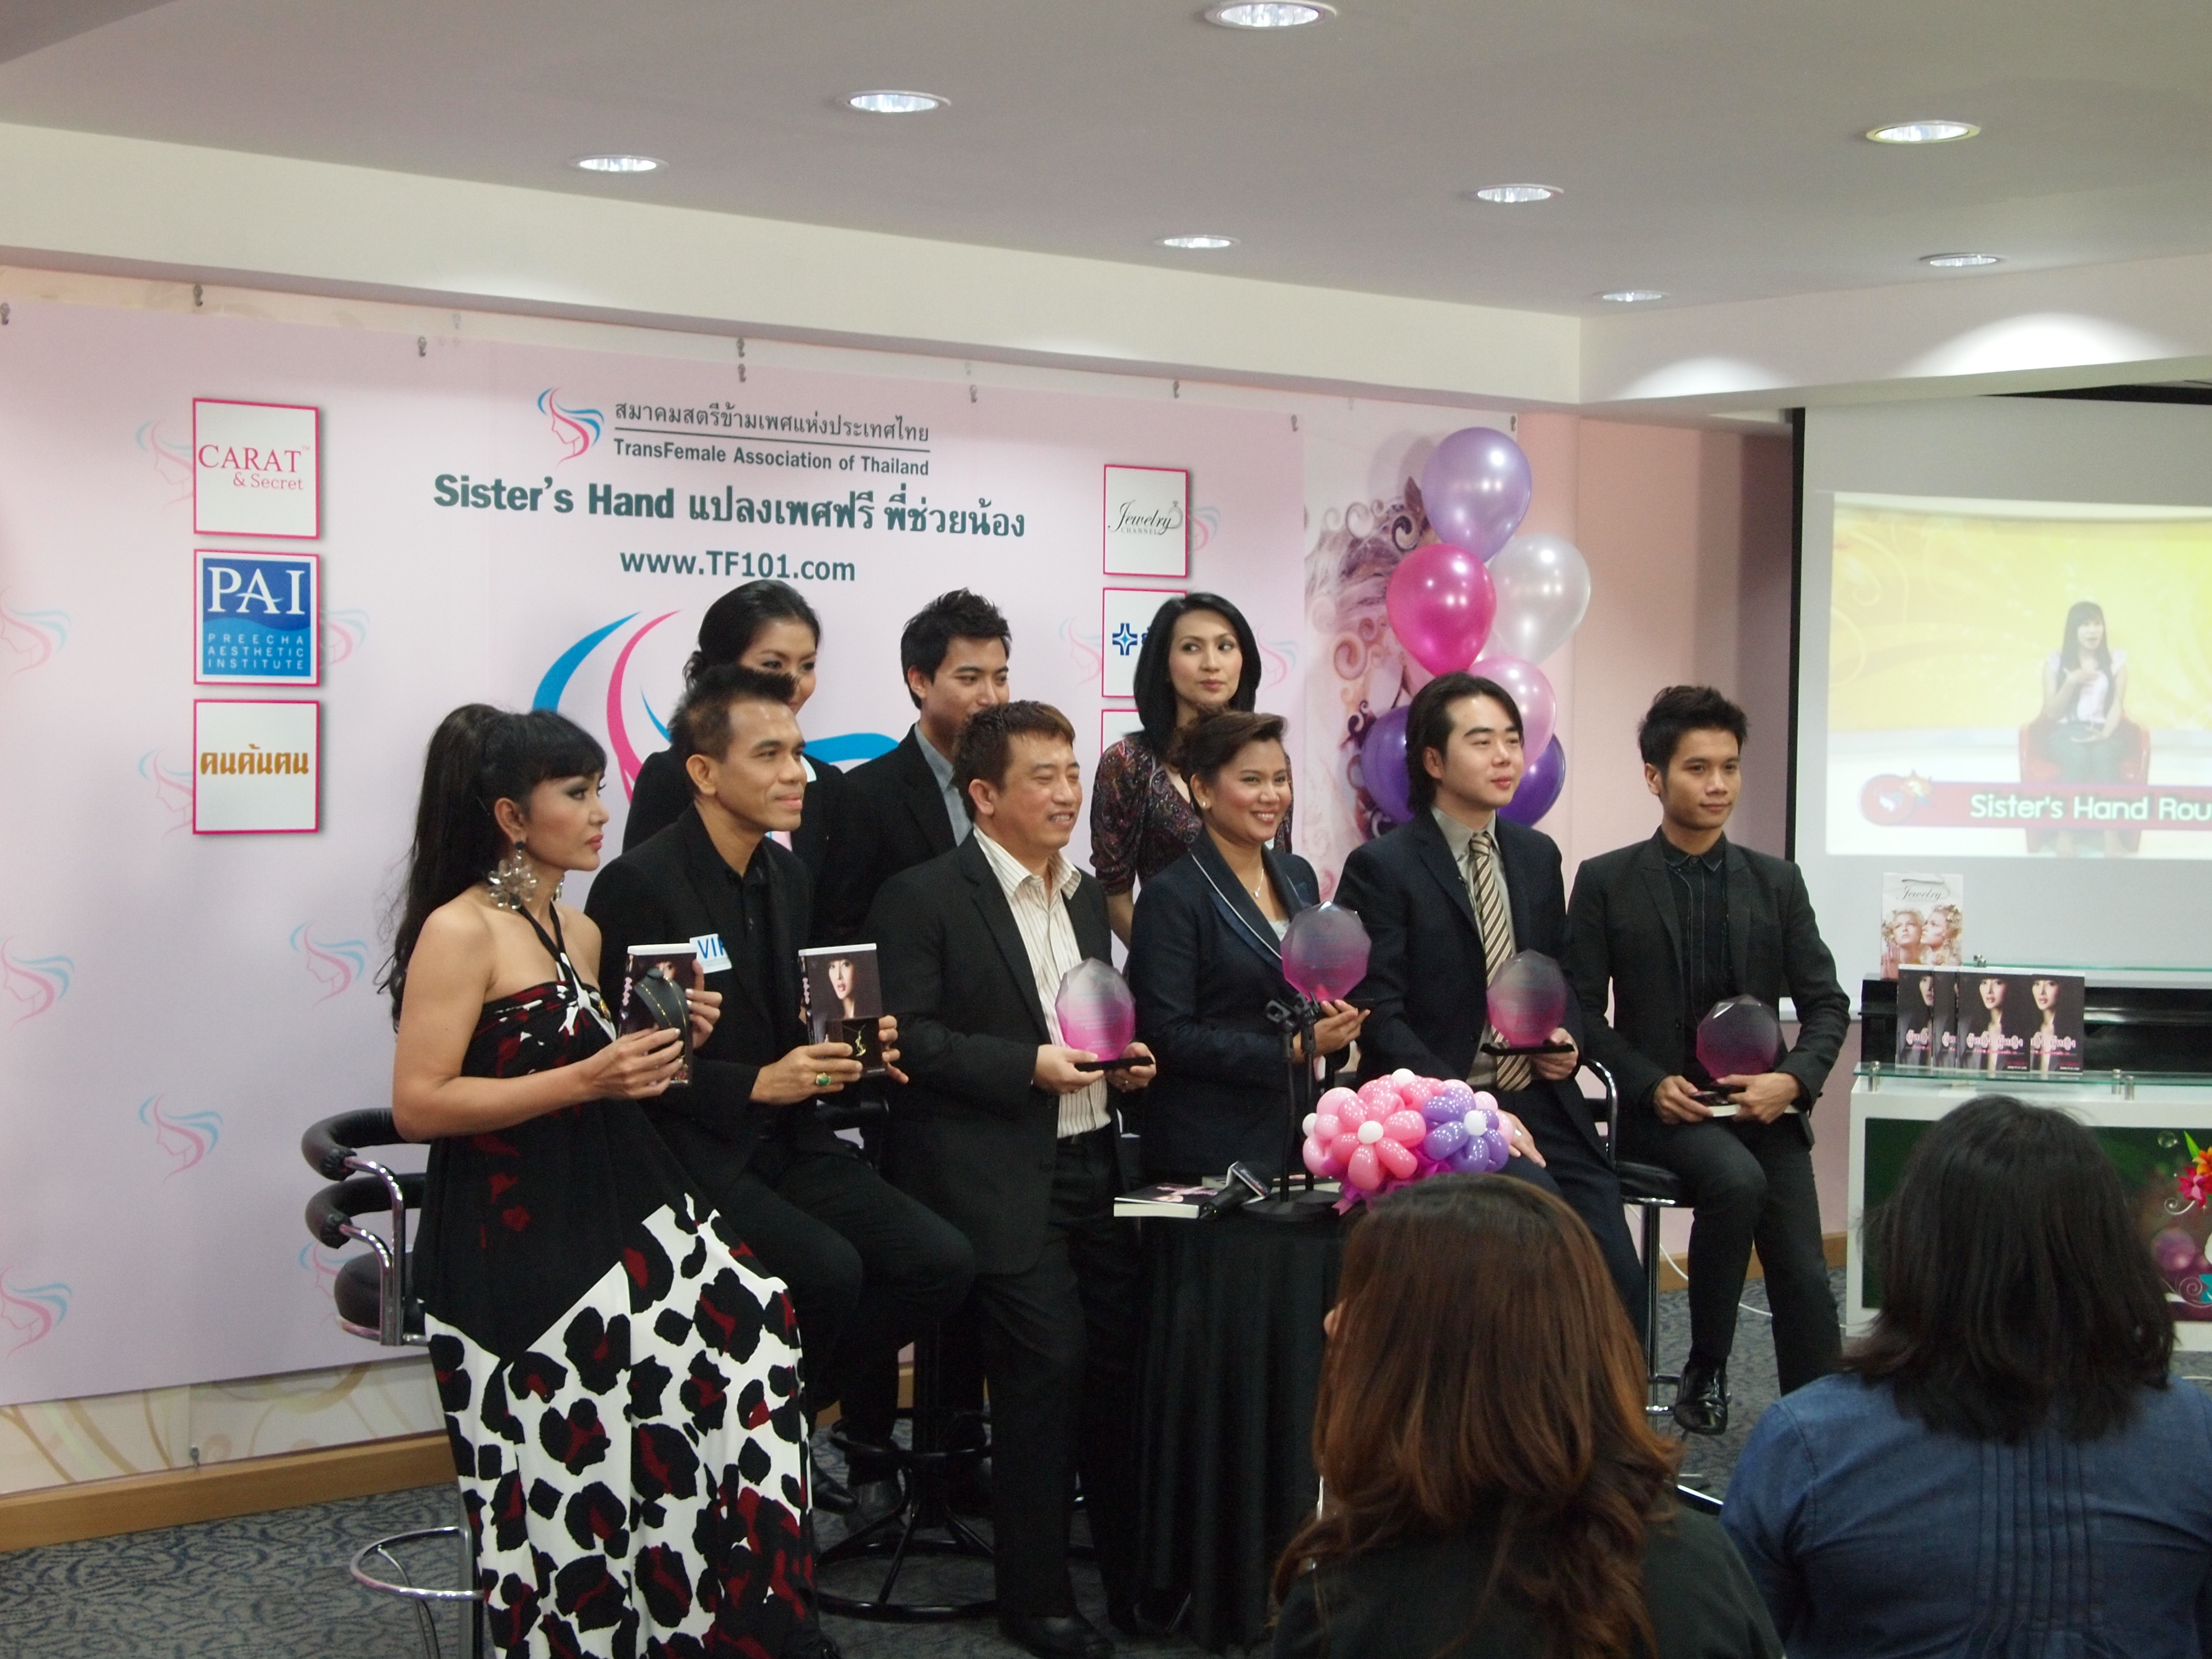 Receive Award from Trans Female Association Thailand